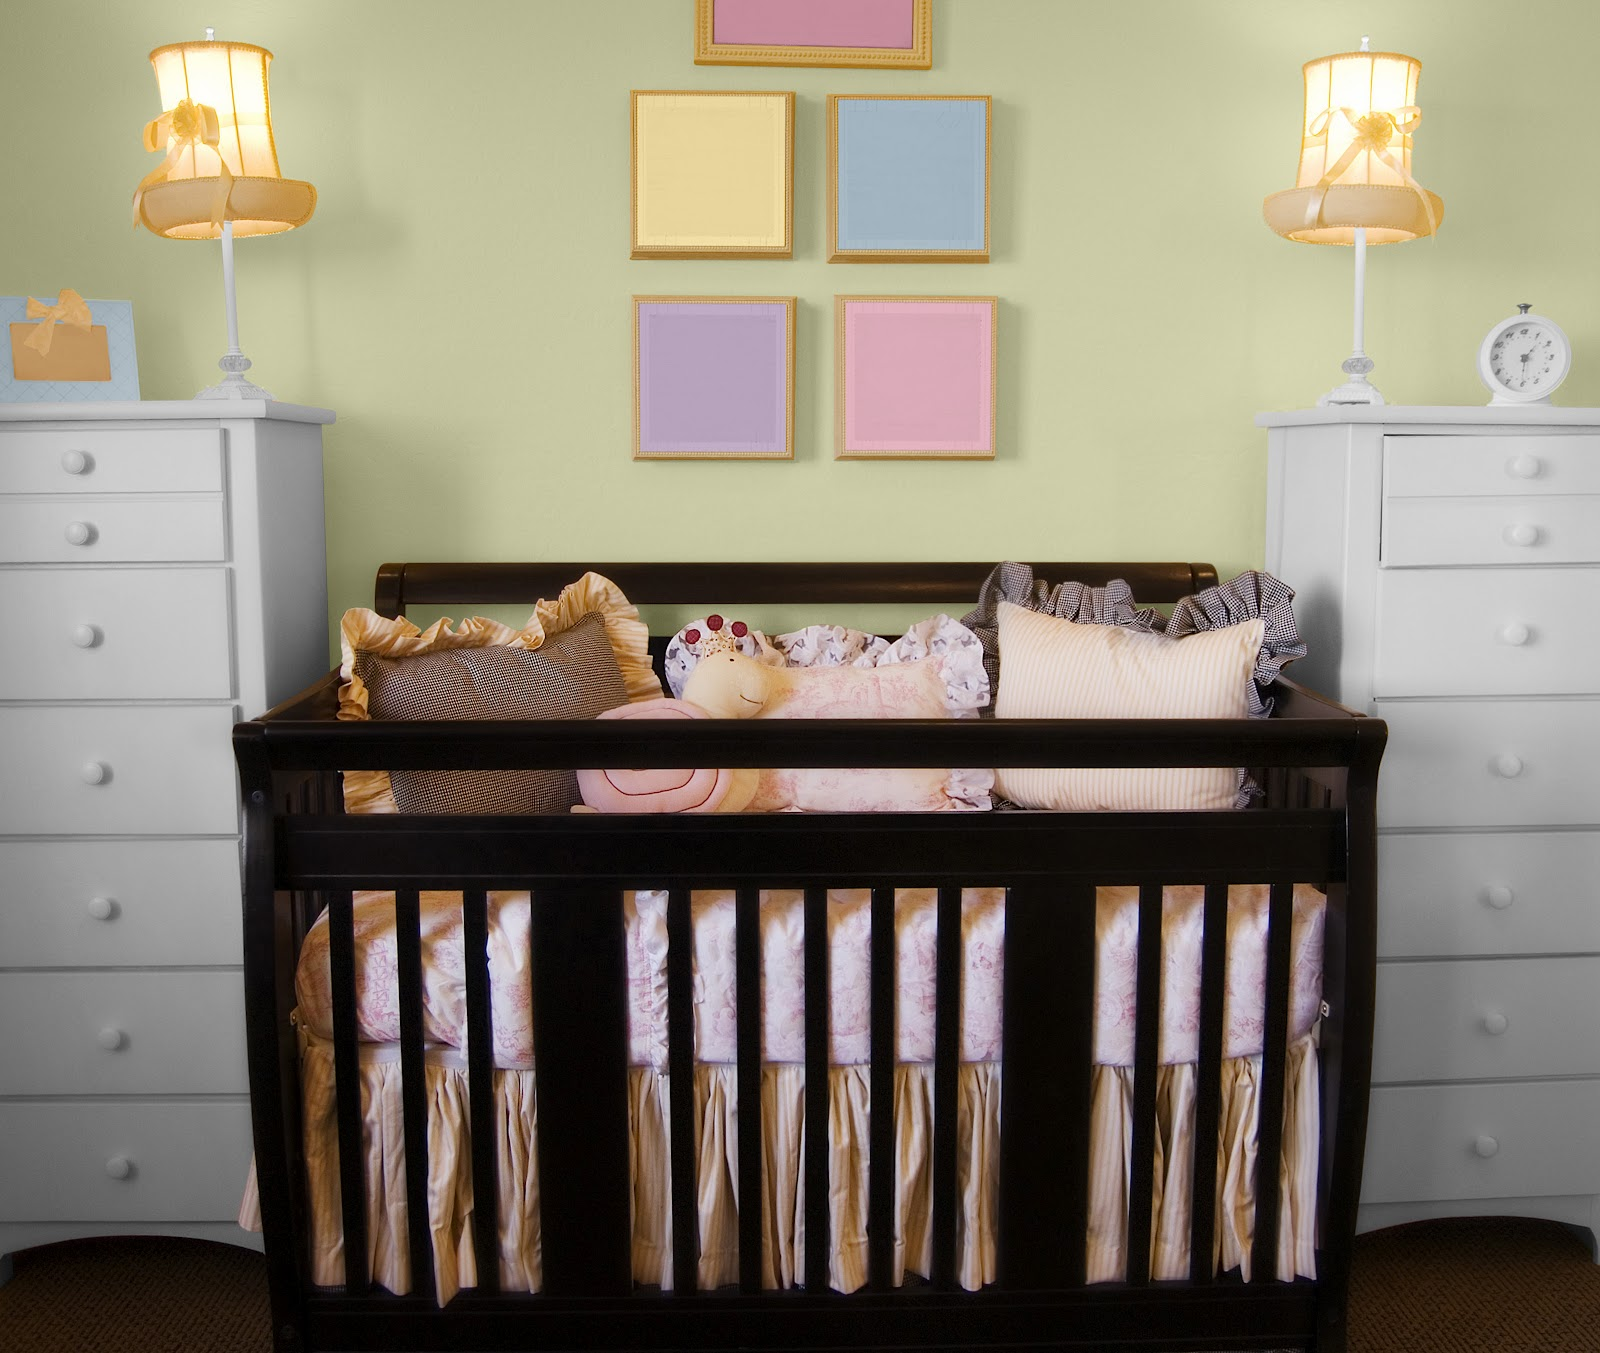 Top 10 baby nursery room colors and decorating ideas - Baby nursey ideas ...